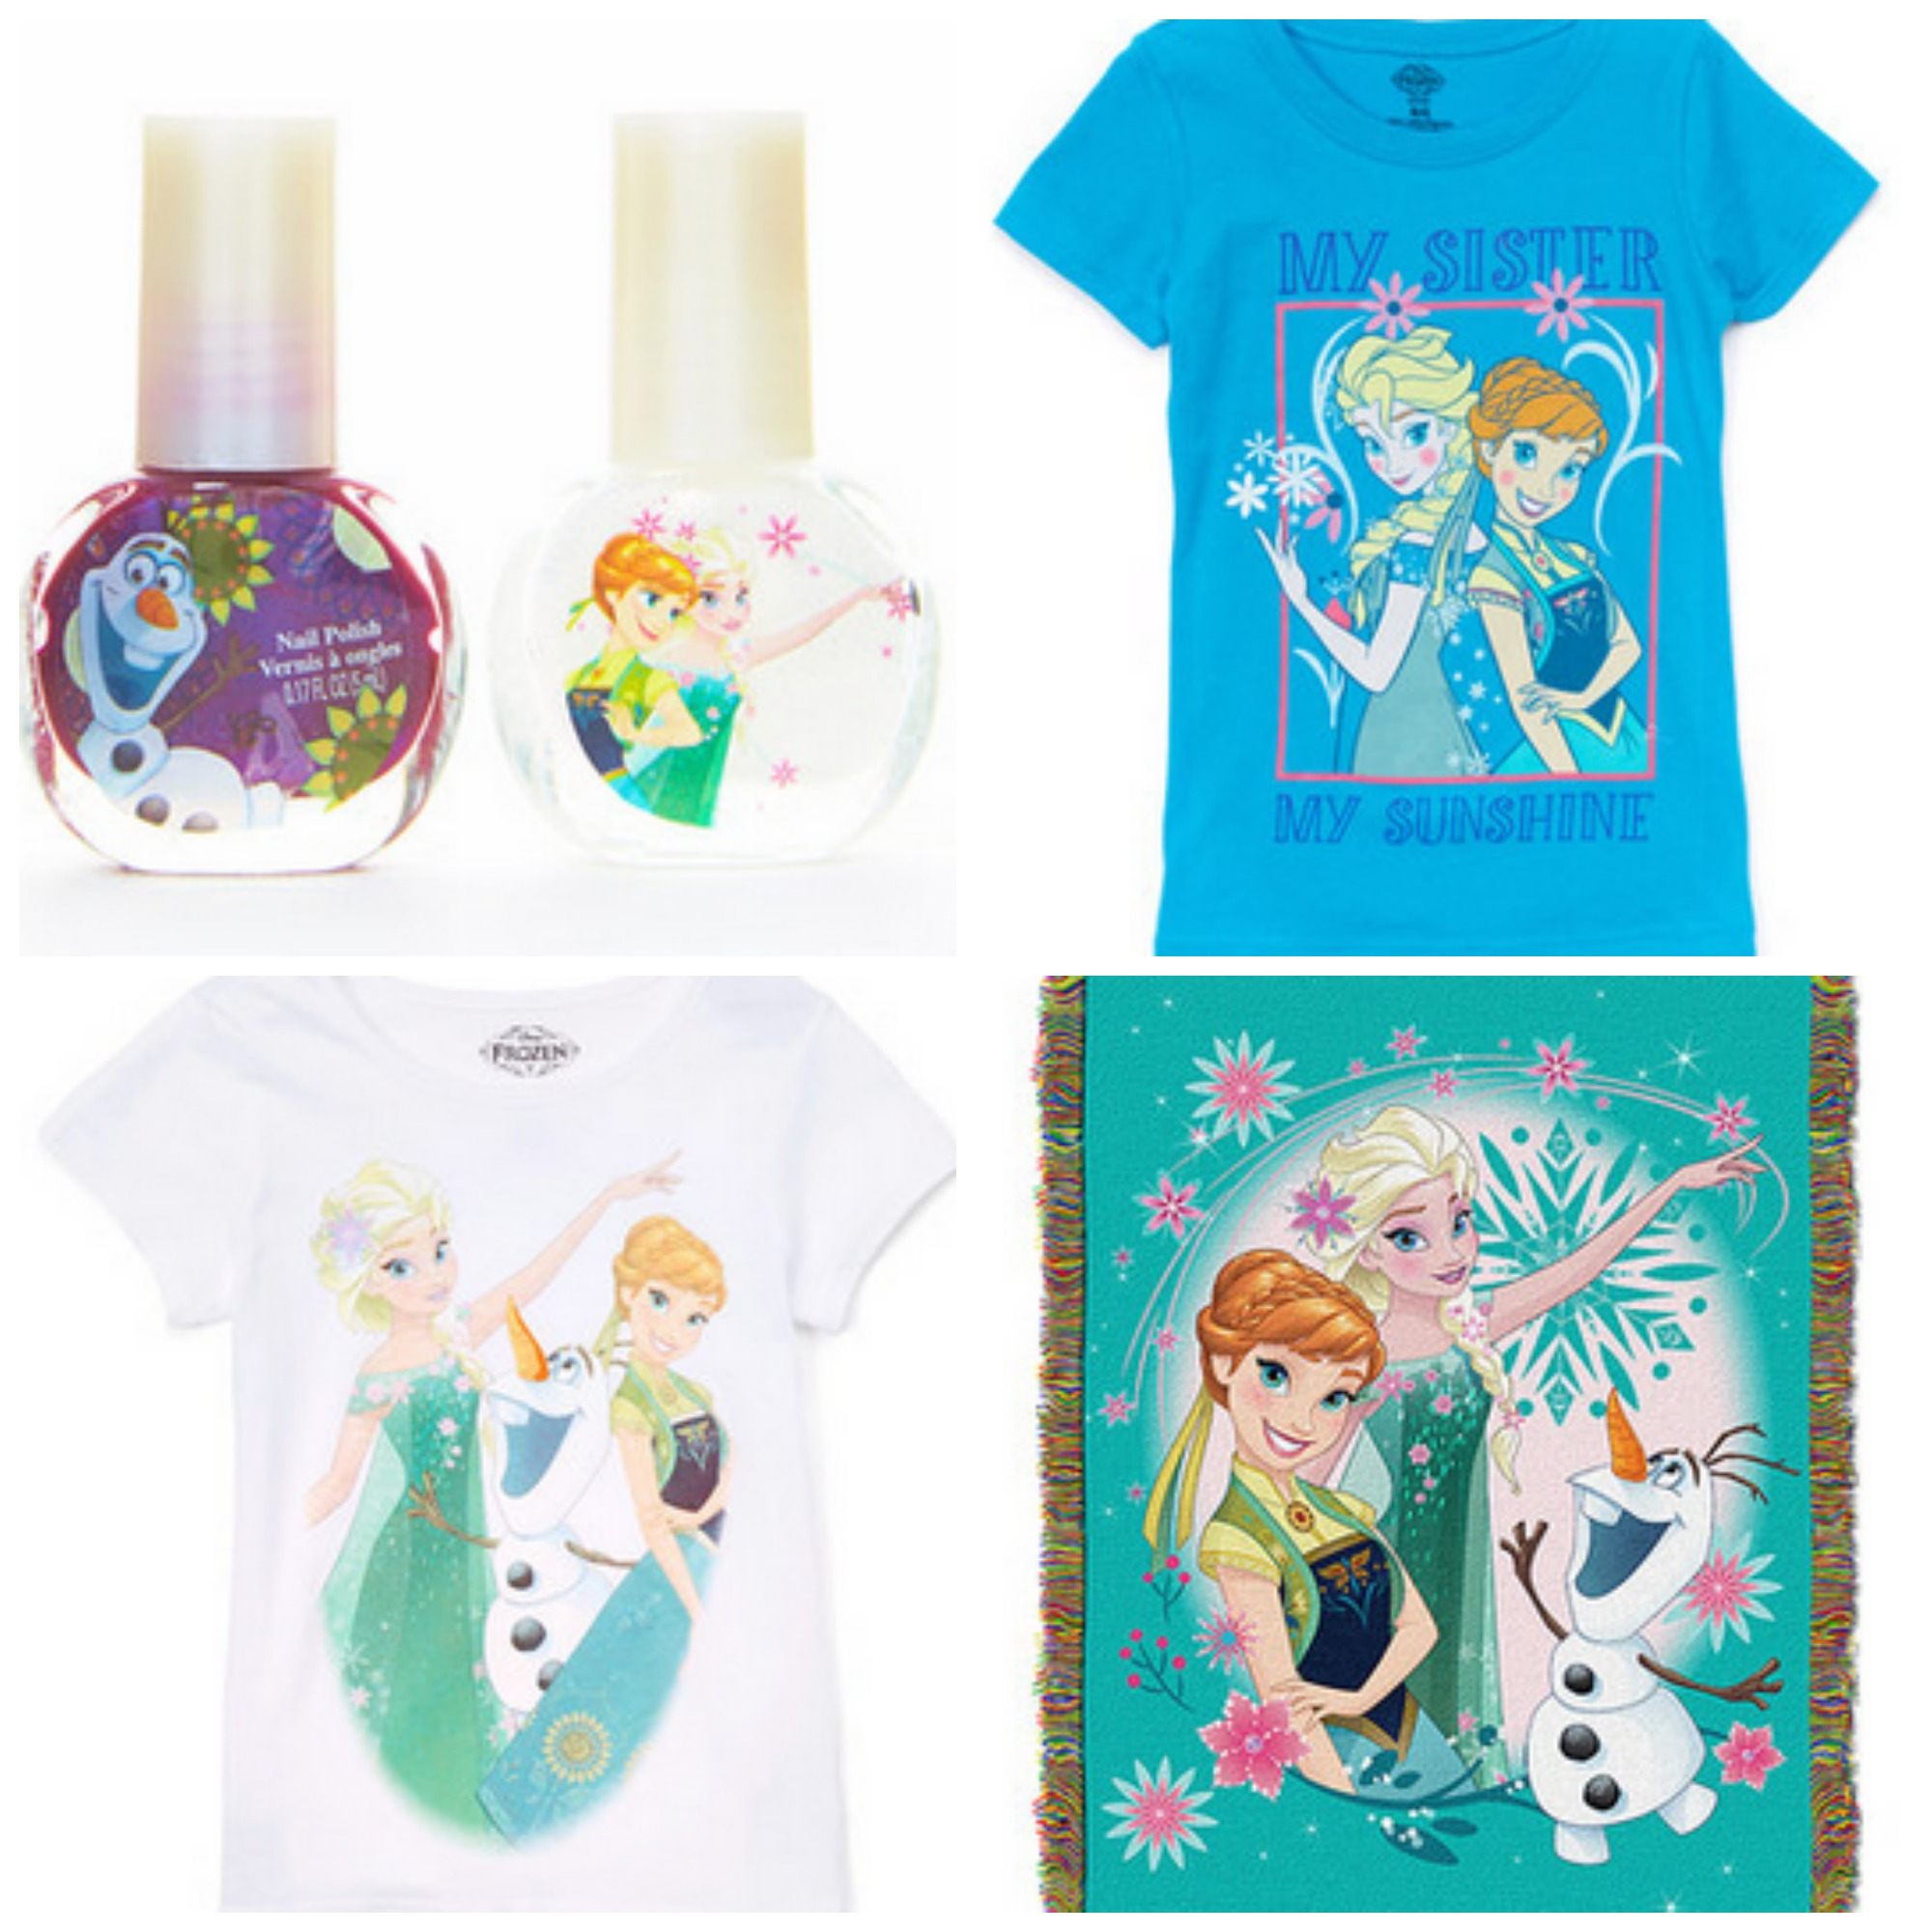 eaaebbe79d4e Frozen Fever Items Up To 60% Off - My Frugal Adventures